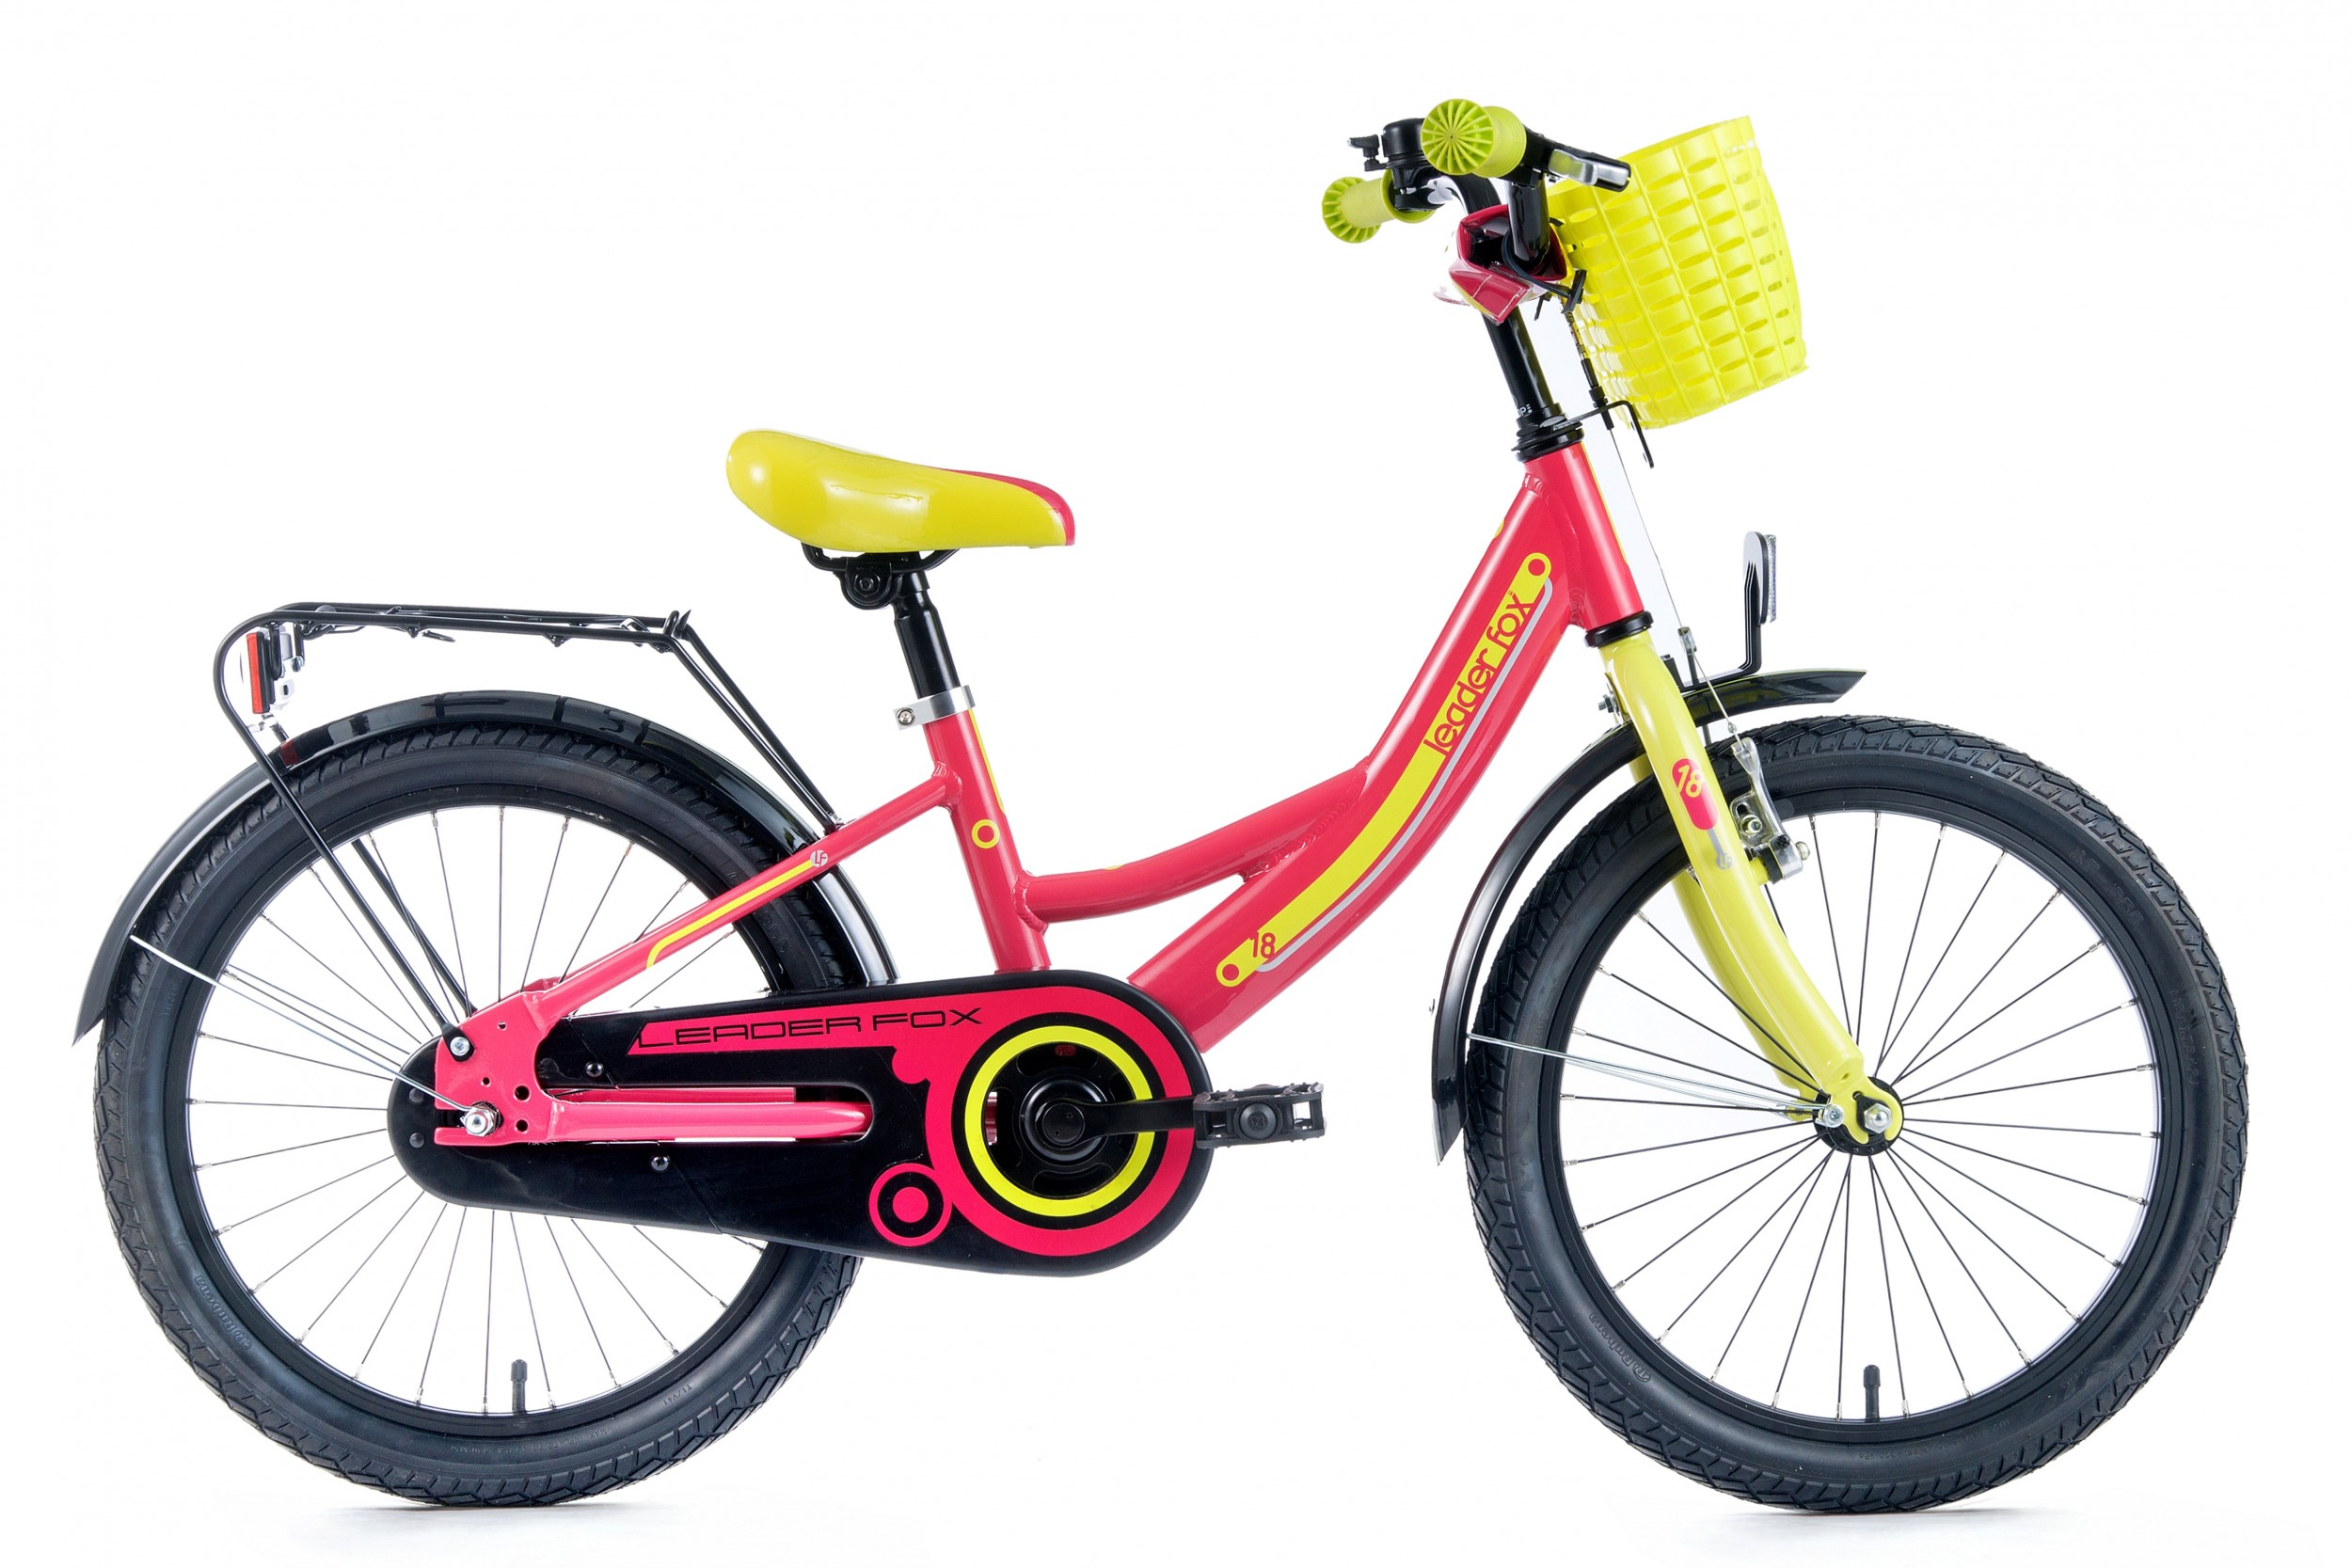 Leader Fox Busby Girls Bicycle 18 Inch 25cm - Pink